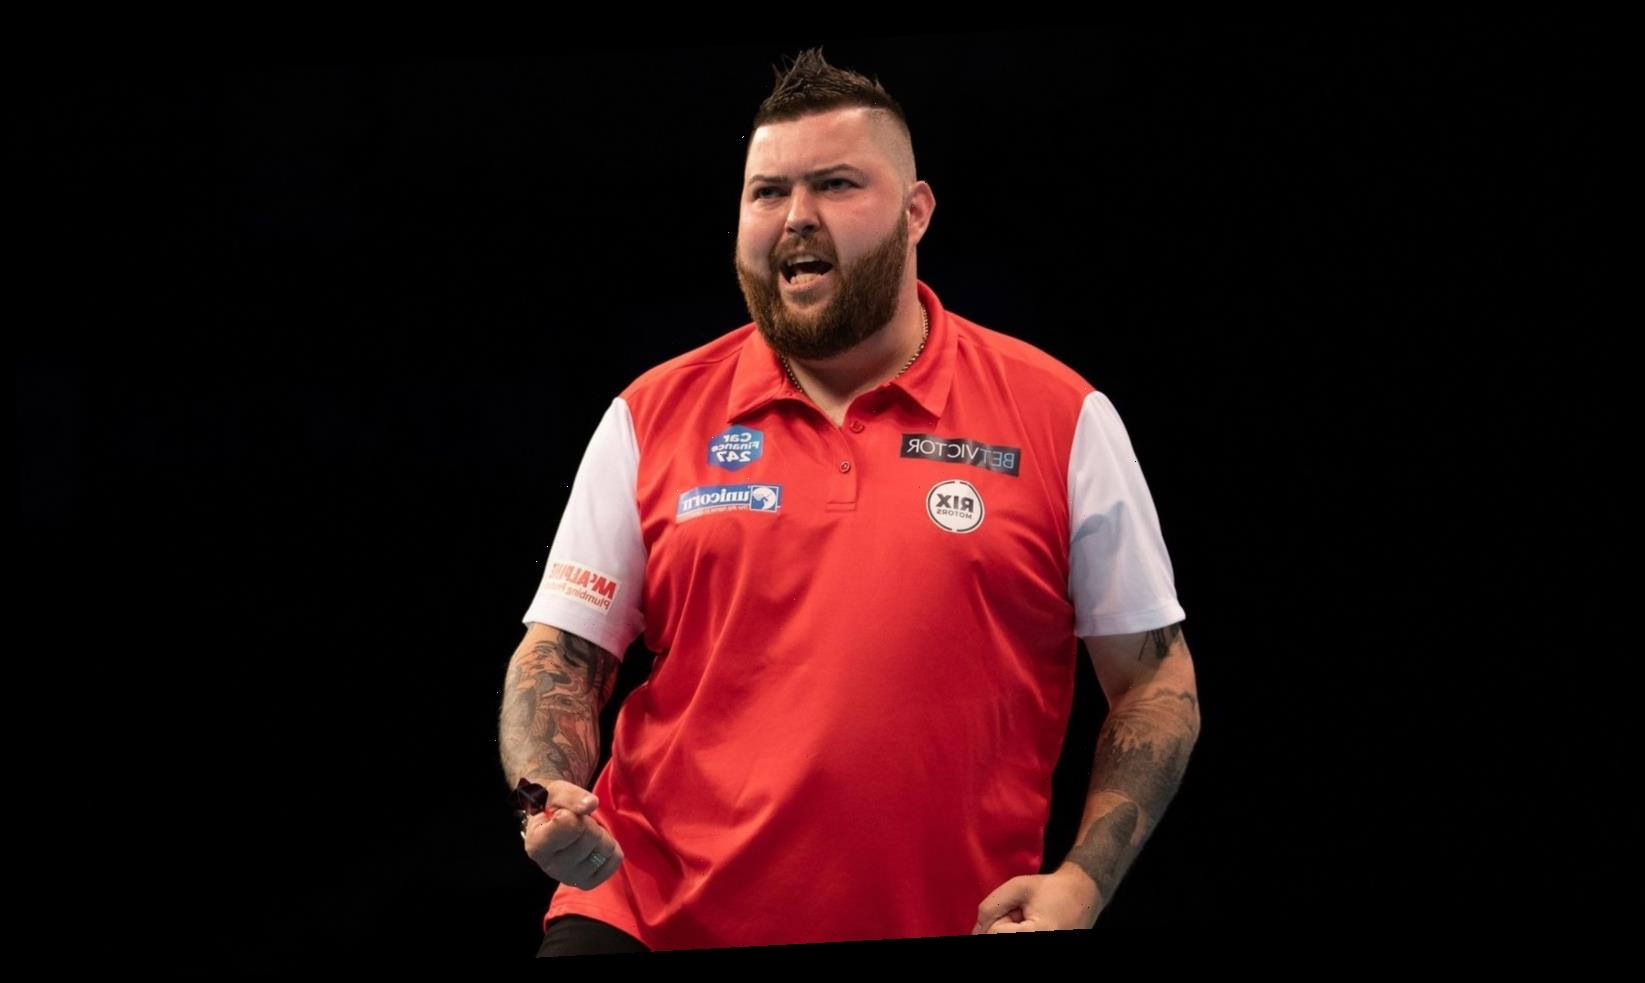 PDC World Cup teams announced: Michael Smith and Rob Cross to represent England